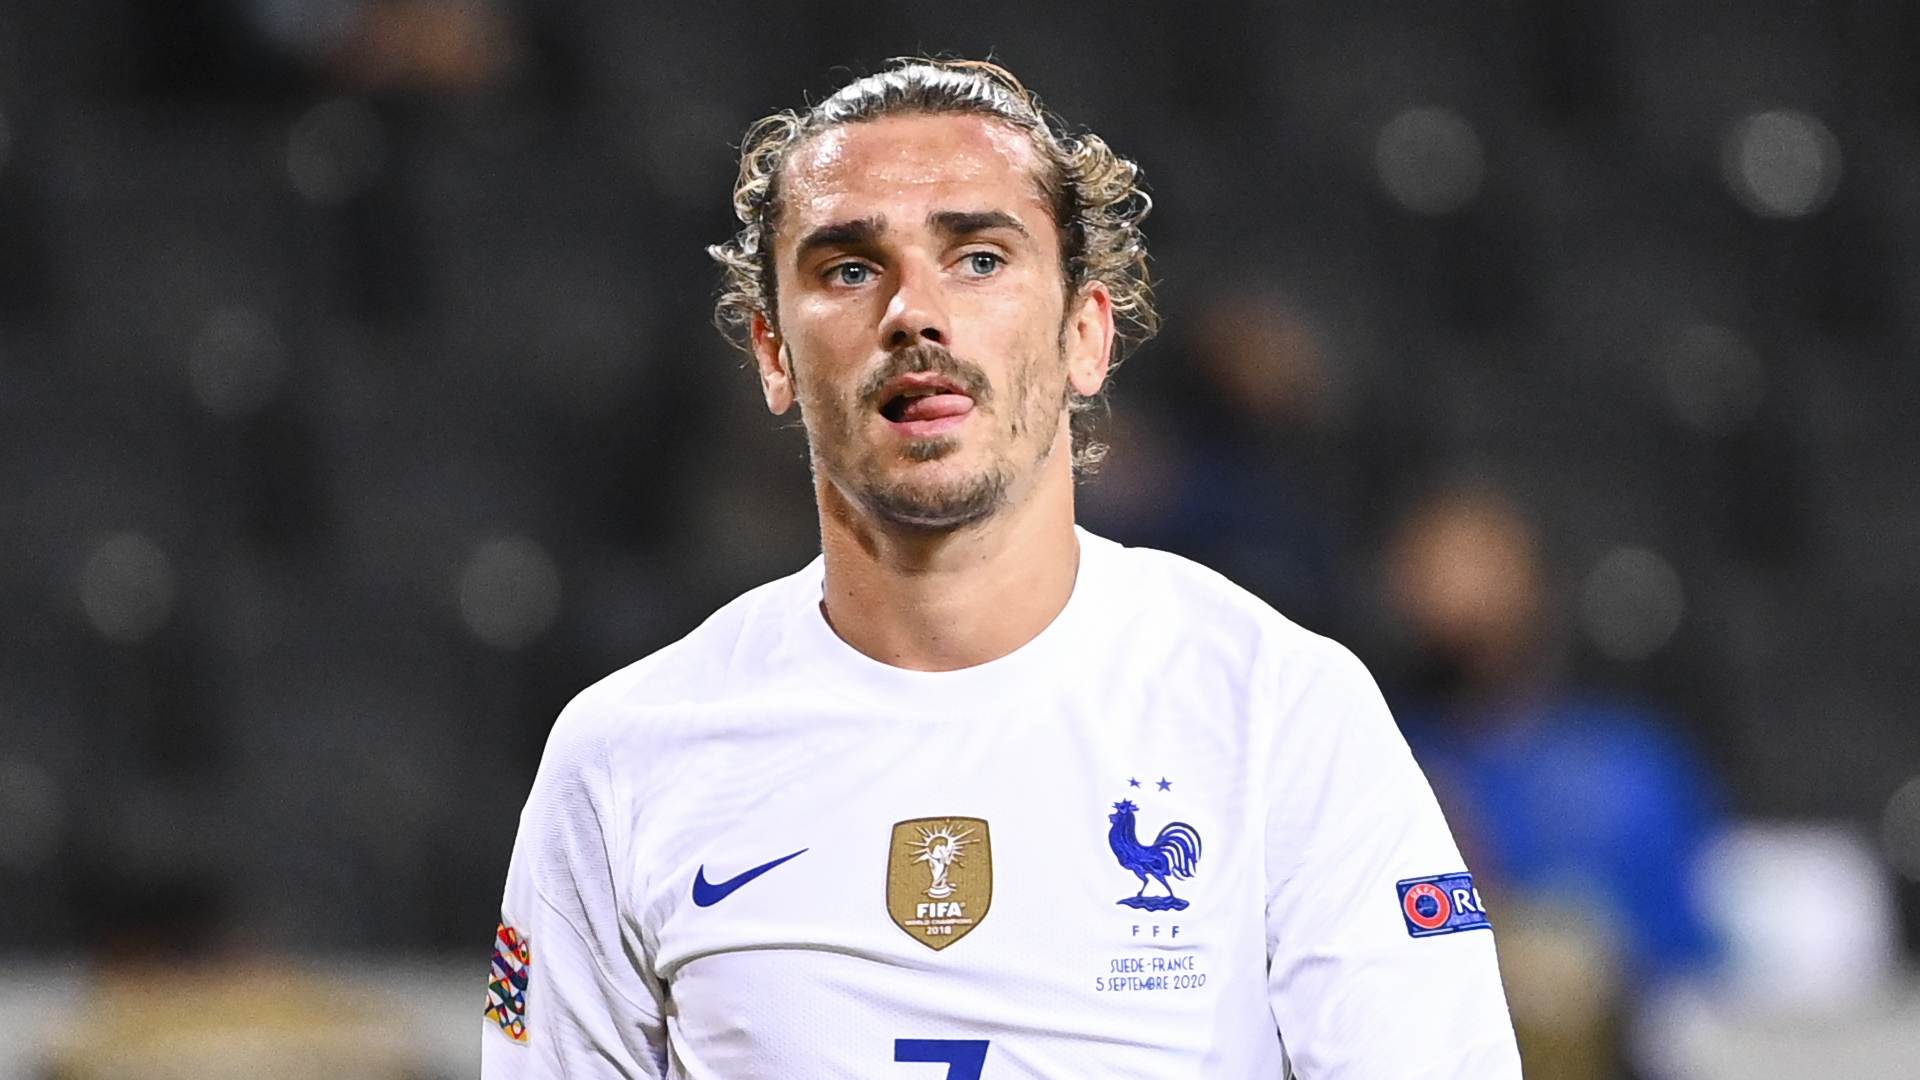 Griezmann's France record doesn't 'guarantee' selection, warns Deschamps